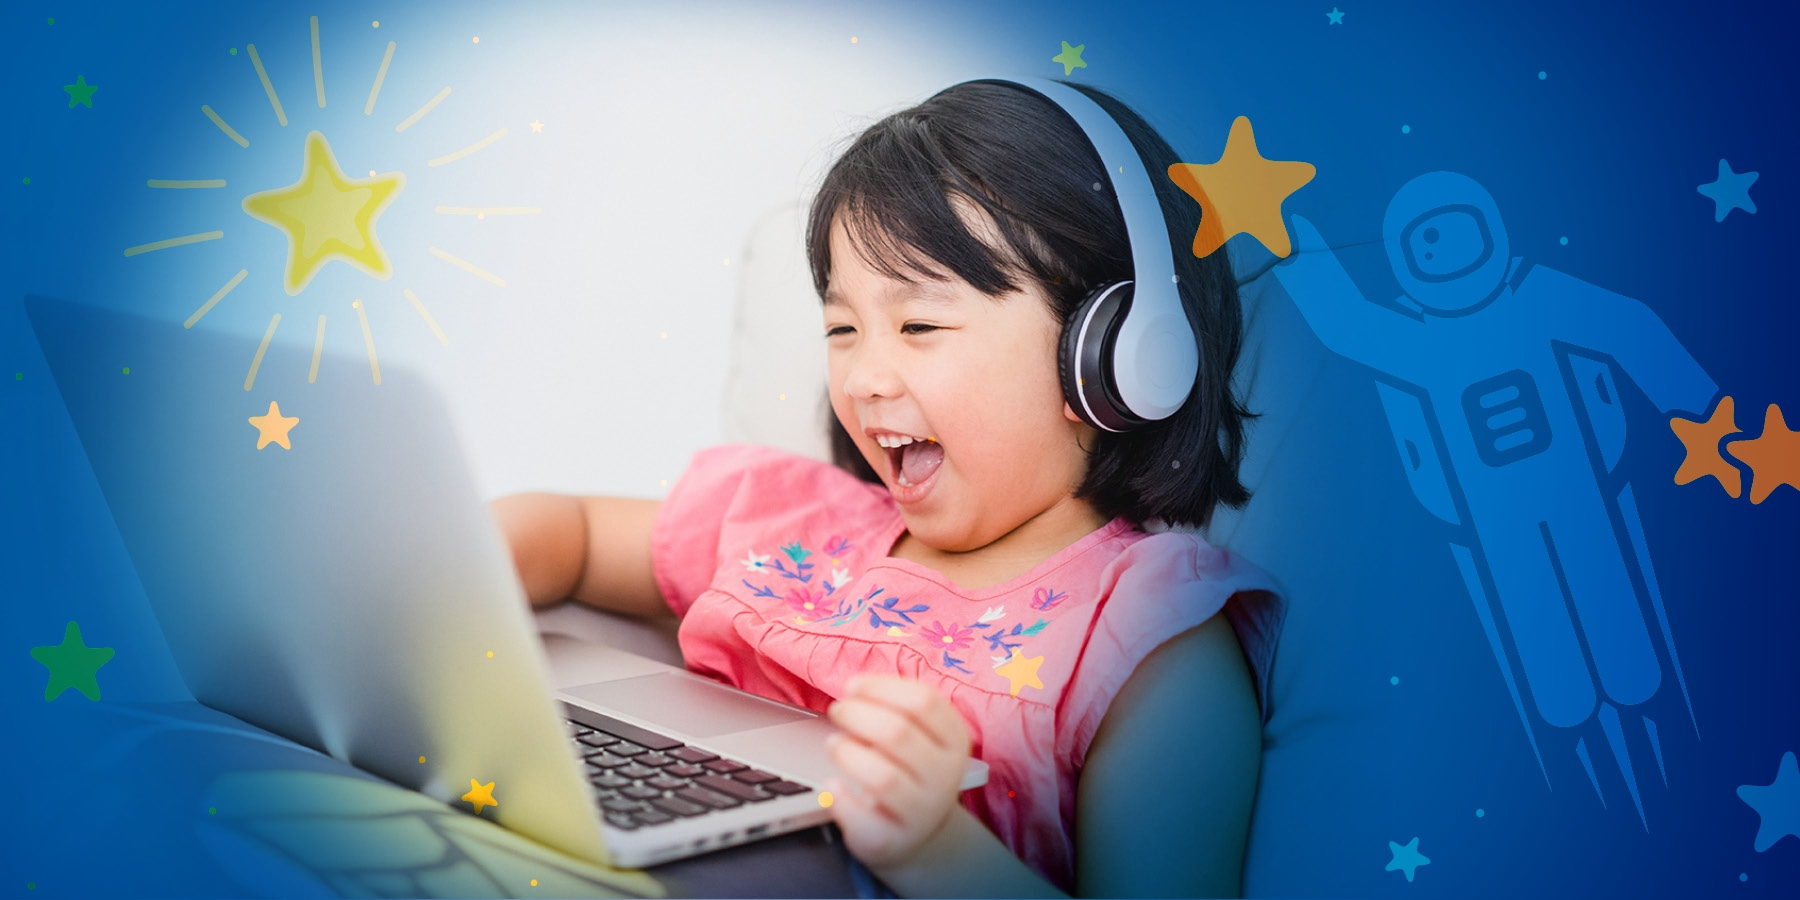 Girl watching her laptop with graphic elements including stars and an astronaut surround her.